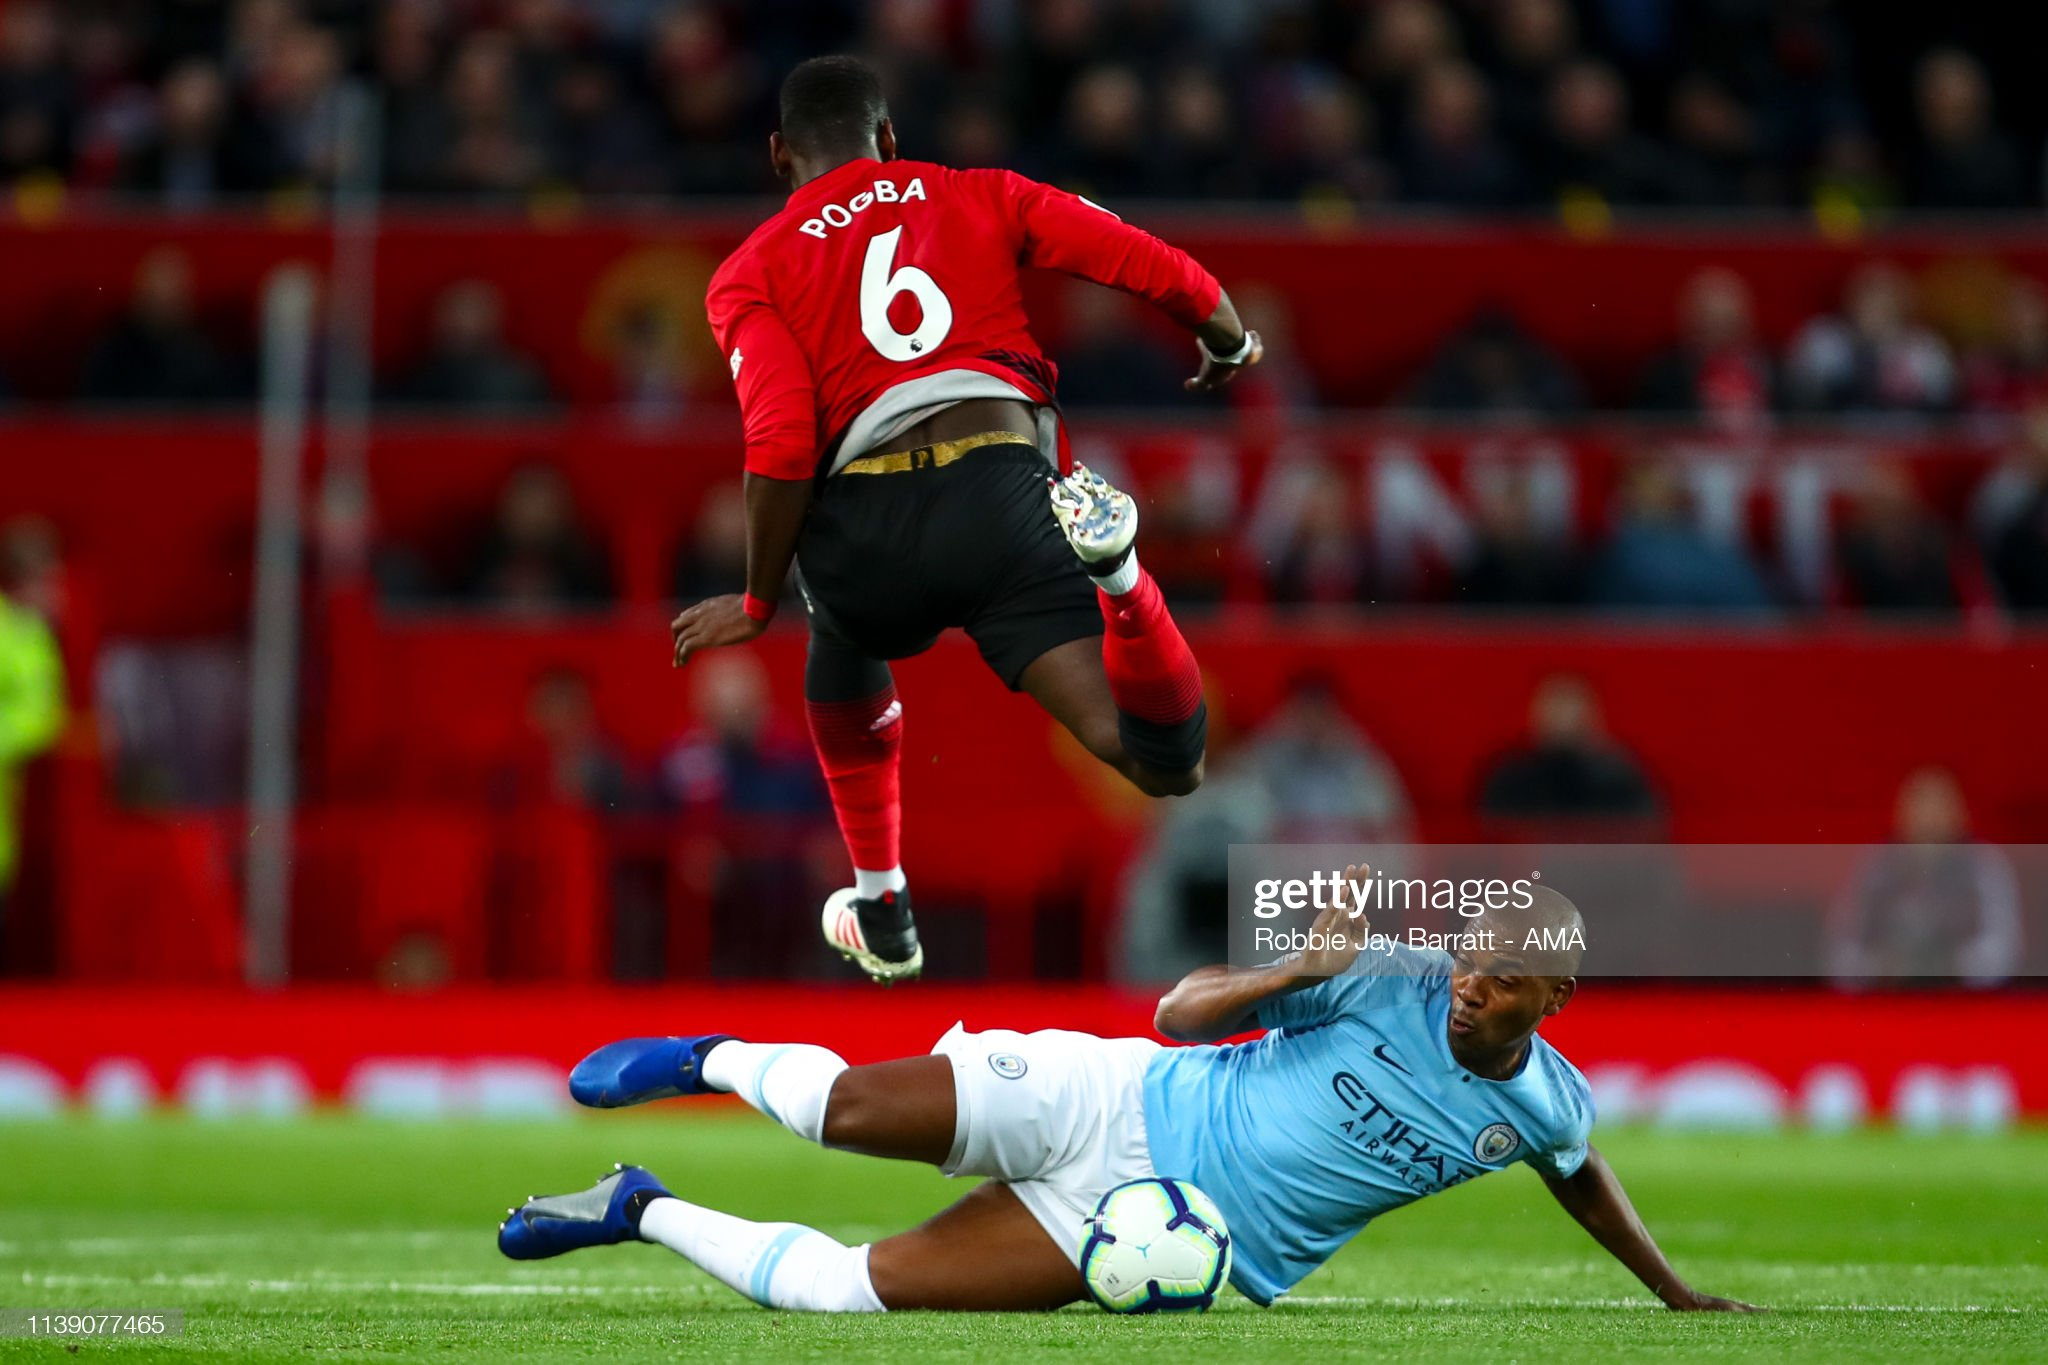 https://media.gettyimages.com/photos/paul-pogba-of-manchester-united-and-fernandinho-of-manchester-city-picture-id1139077465?s=2048x2048